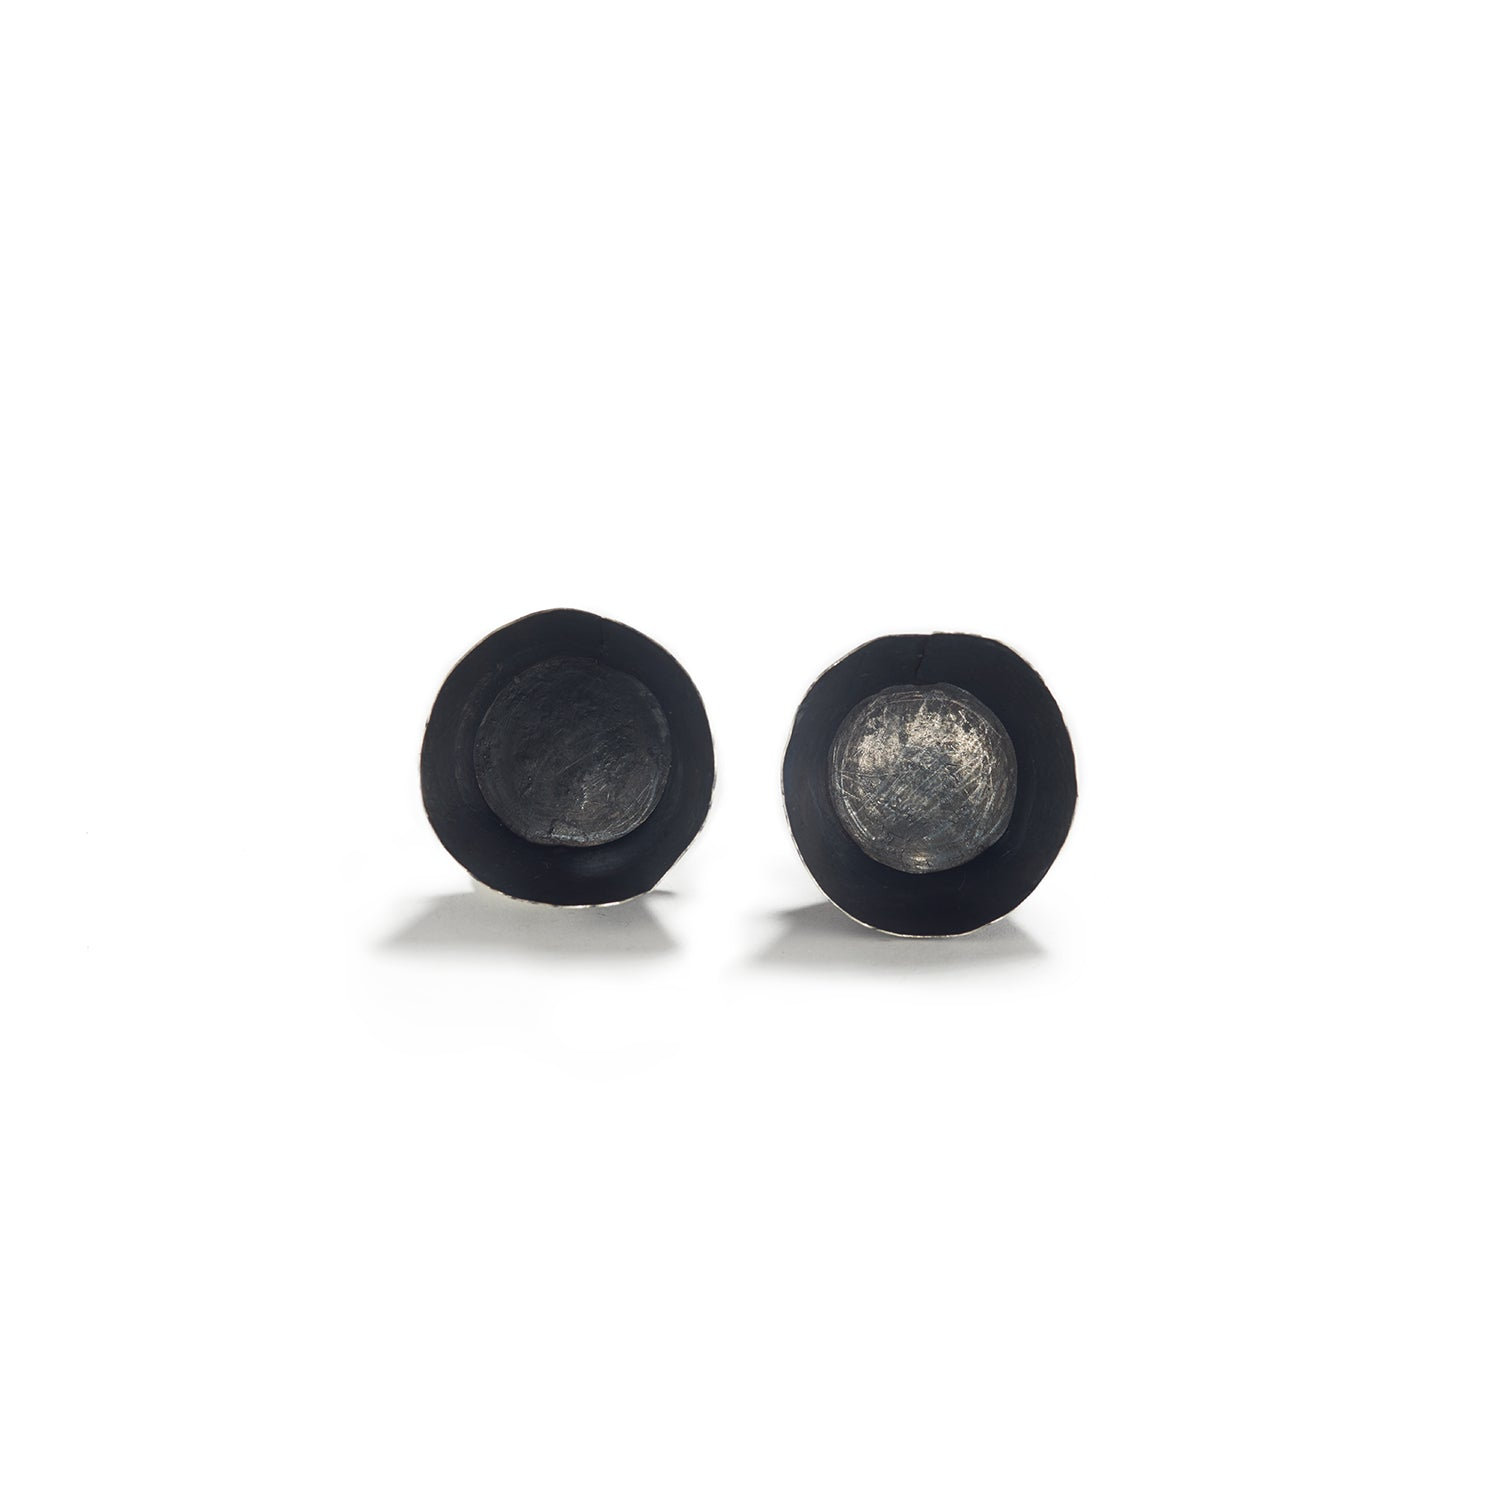 Oxidized Sterling Silver Bowl Earrings